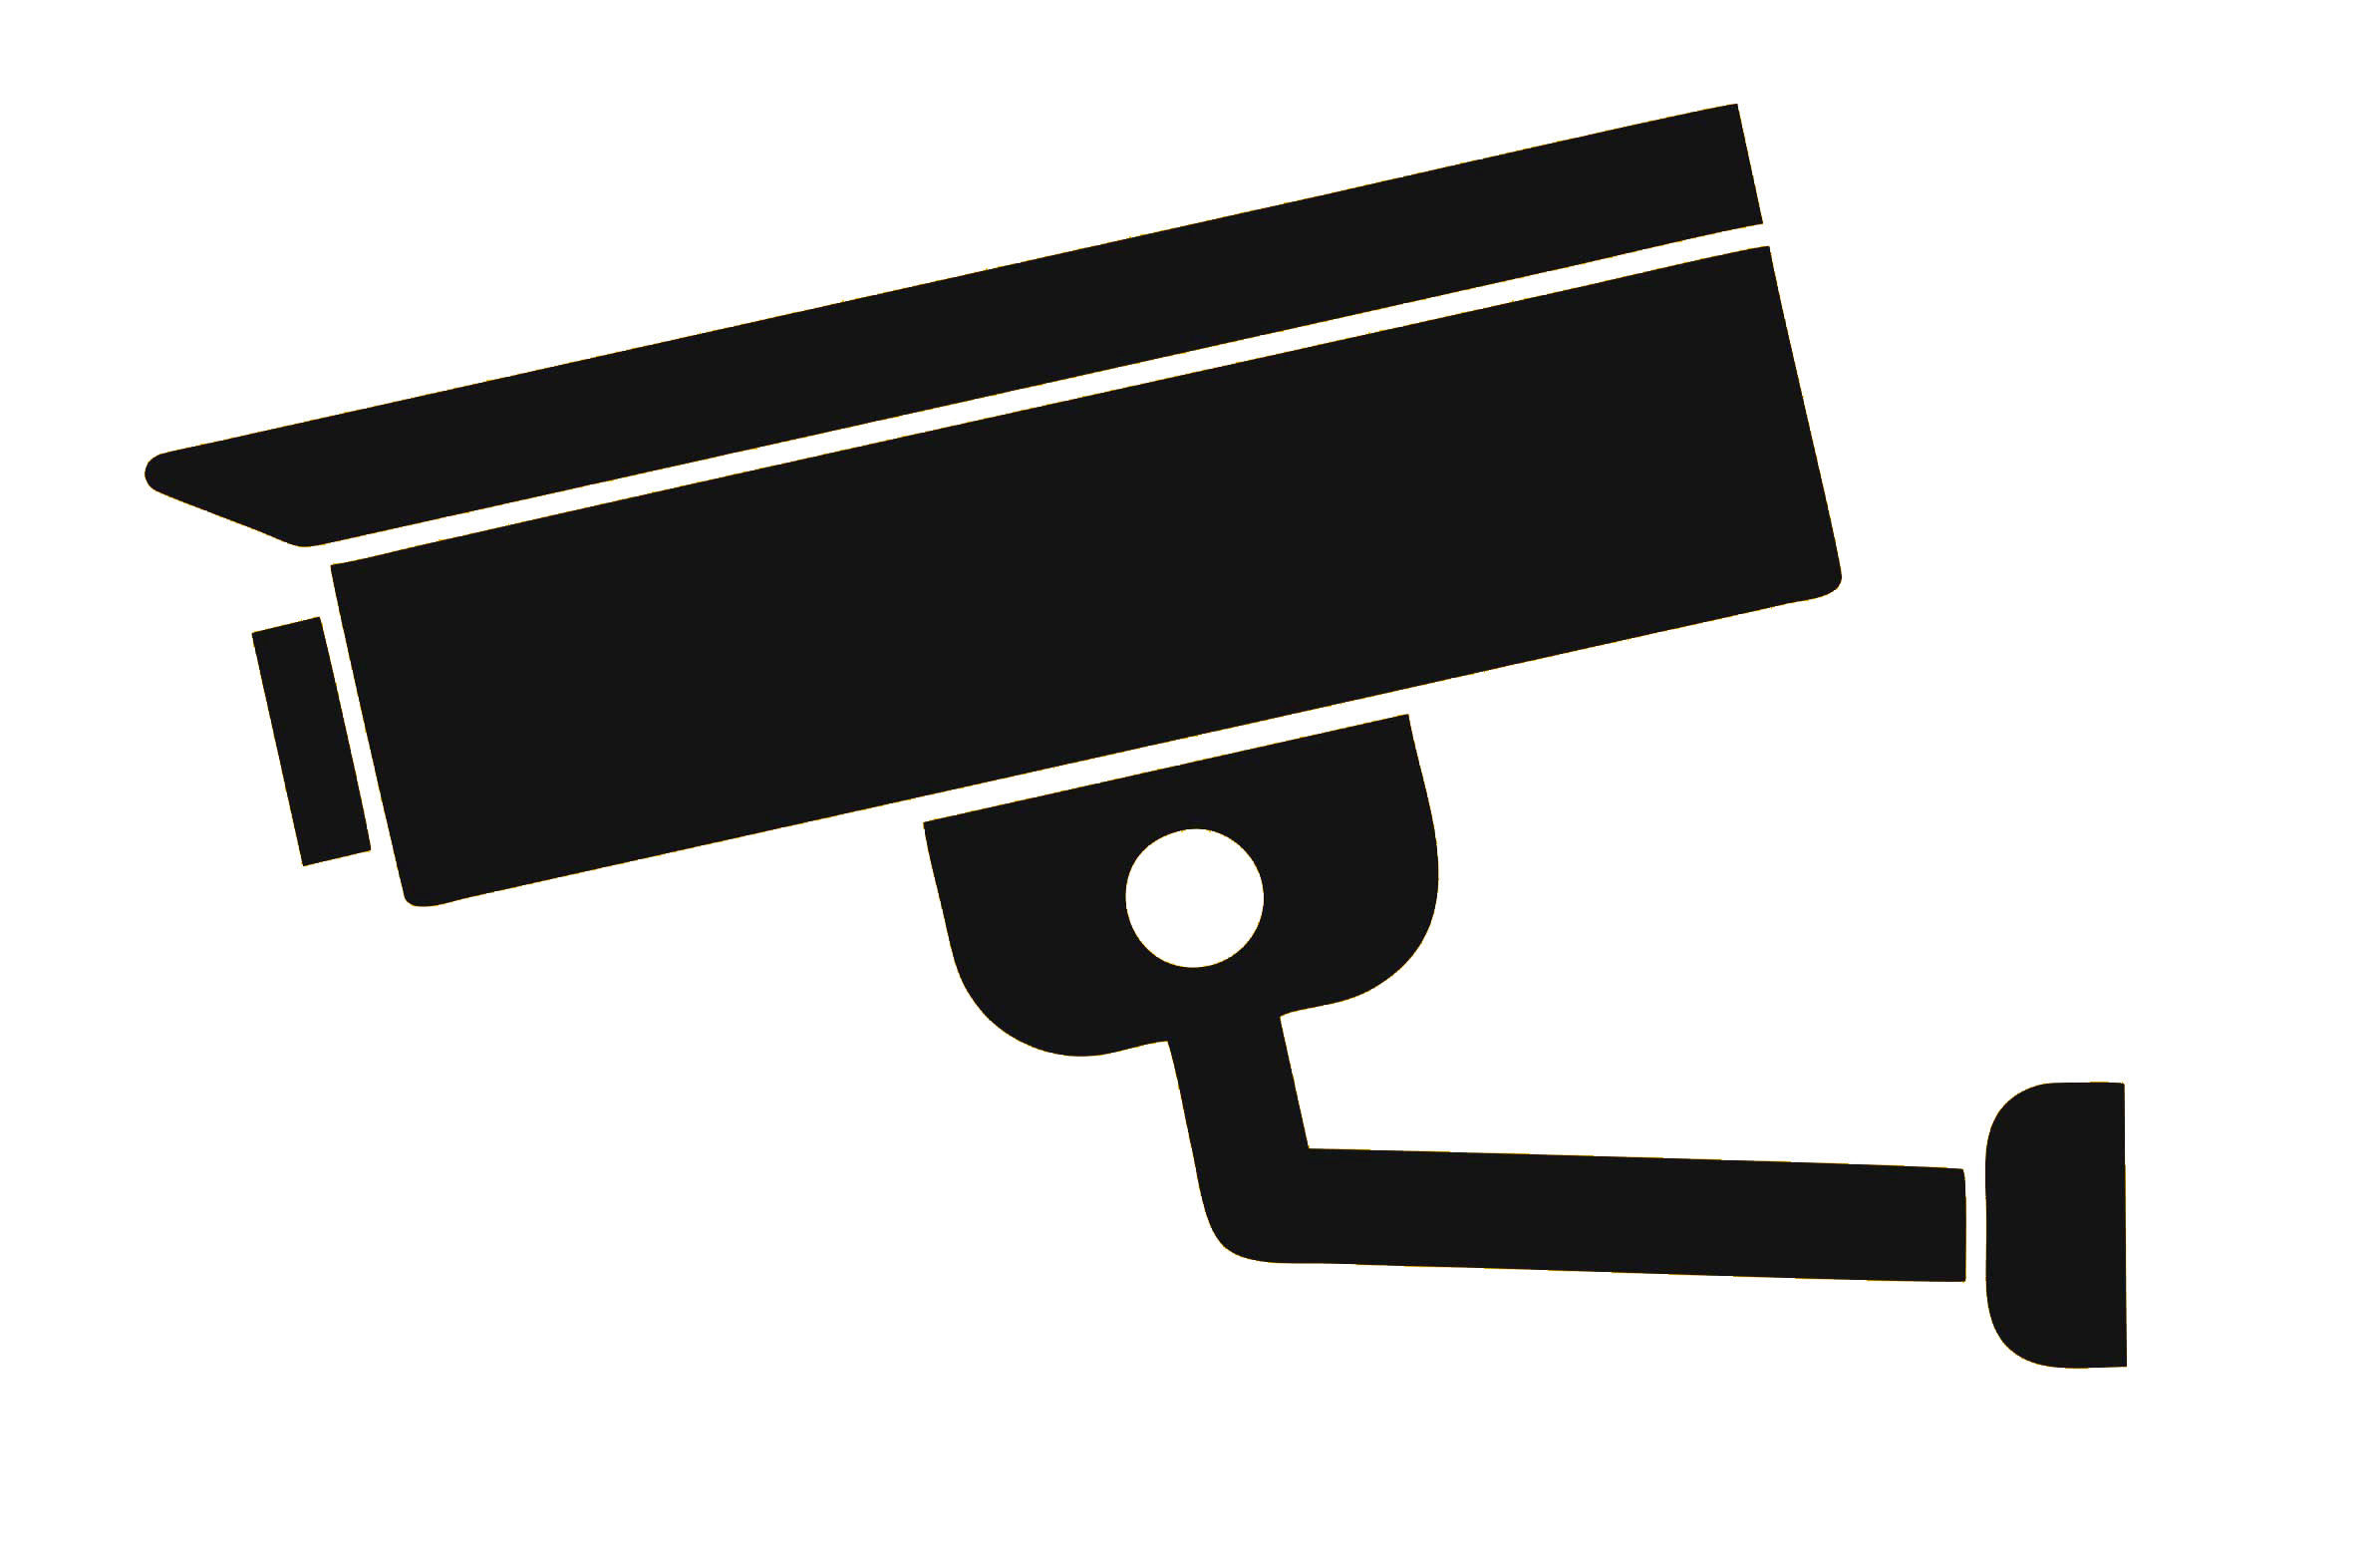 Wireless security camera Clip art Closed.